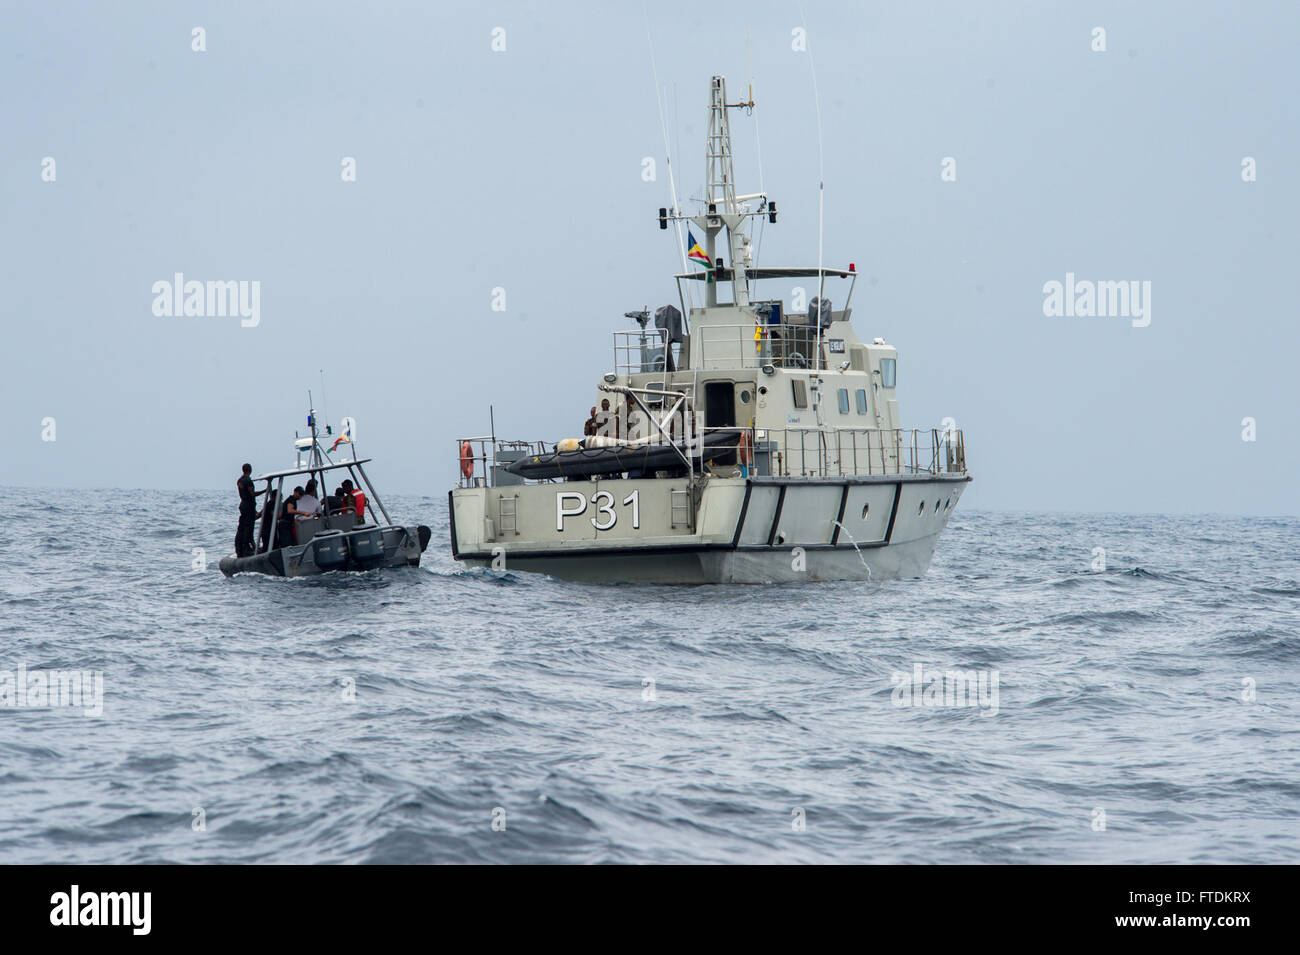 160202-N-TC720-120 PORT VICTORIA, Seychelles (Feb.2, 2016) -Maritime forces from Seychelles pilot a rigid hull inflatable Stock Photo